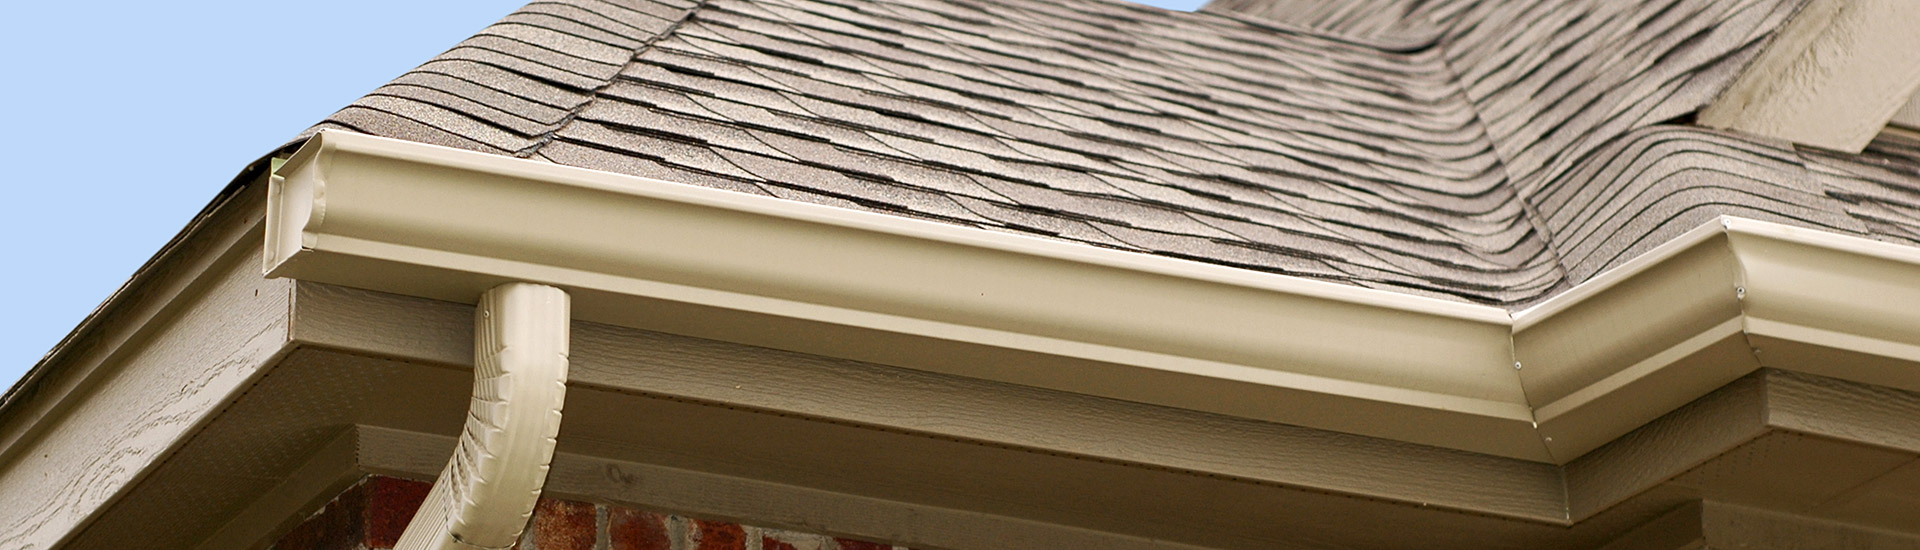 Roofing Shingles and Gutters